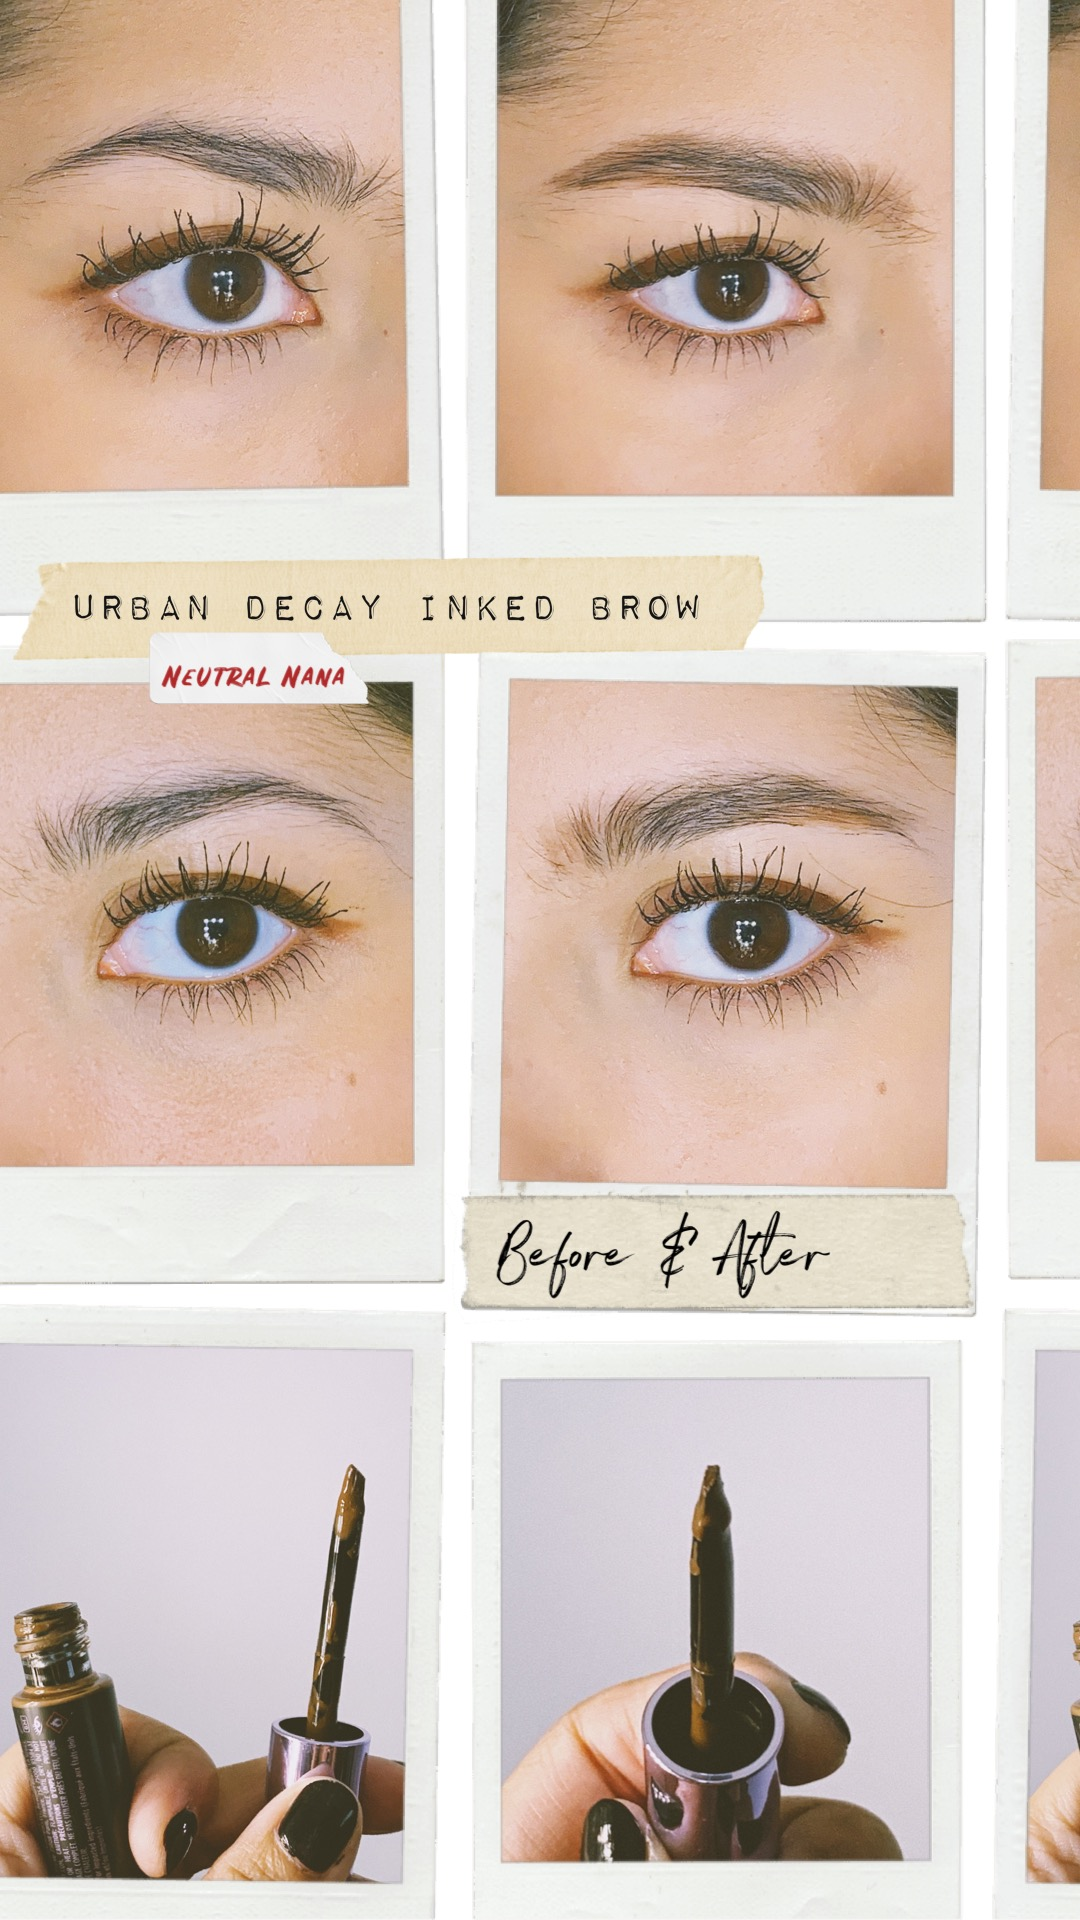 urban decay inked brow neutral nana before and after